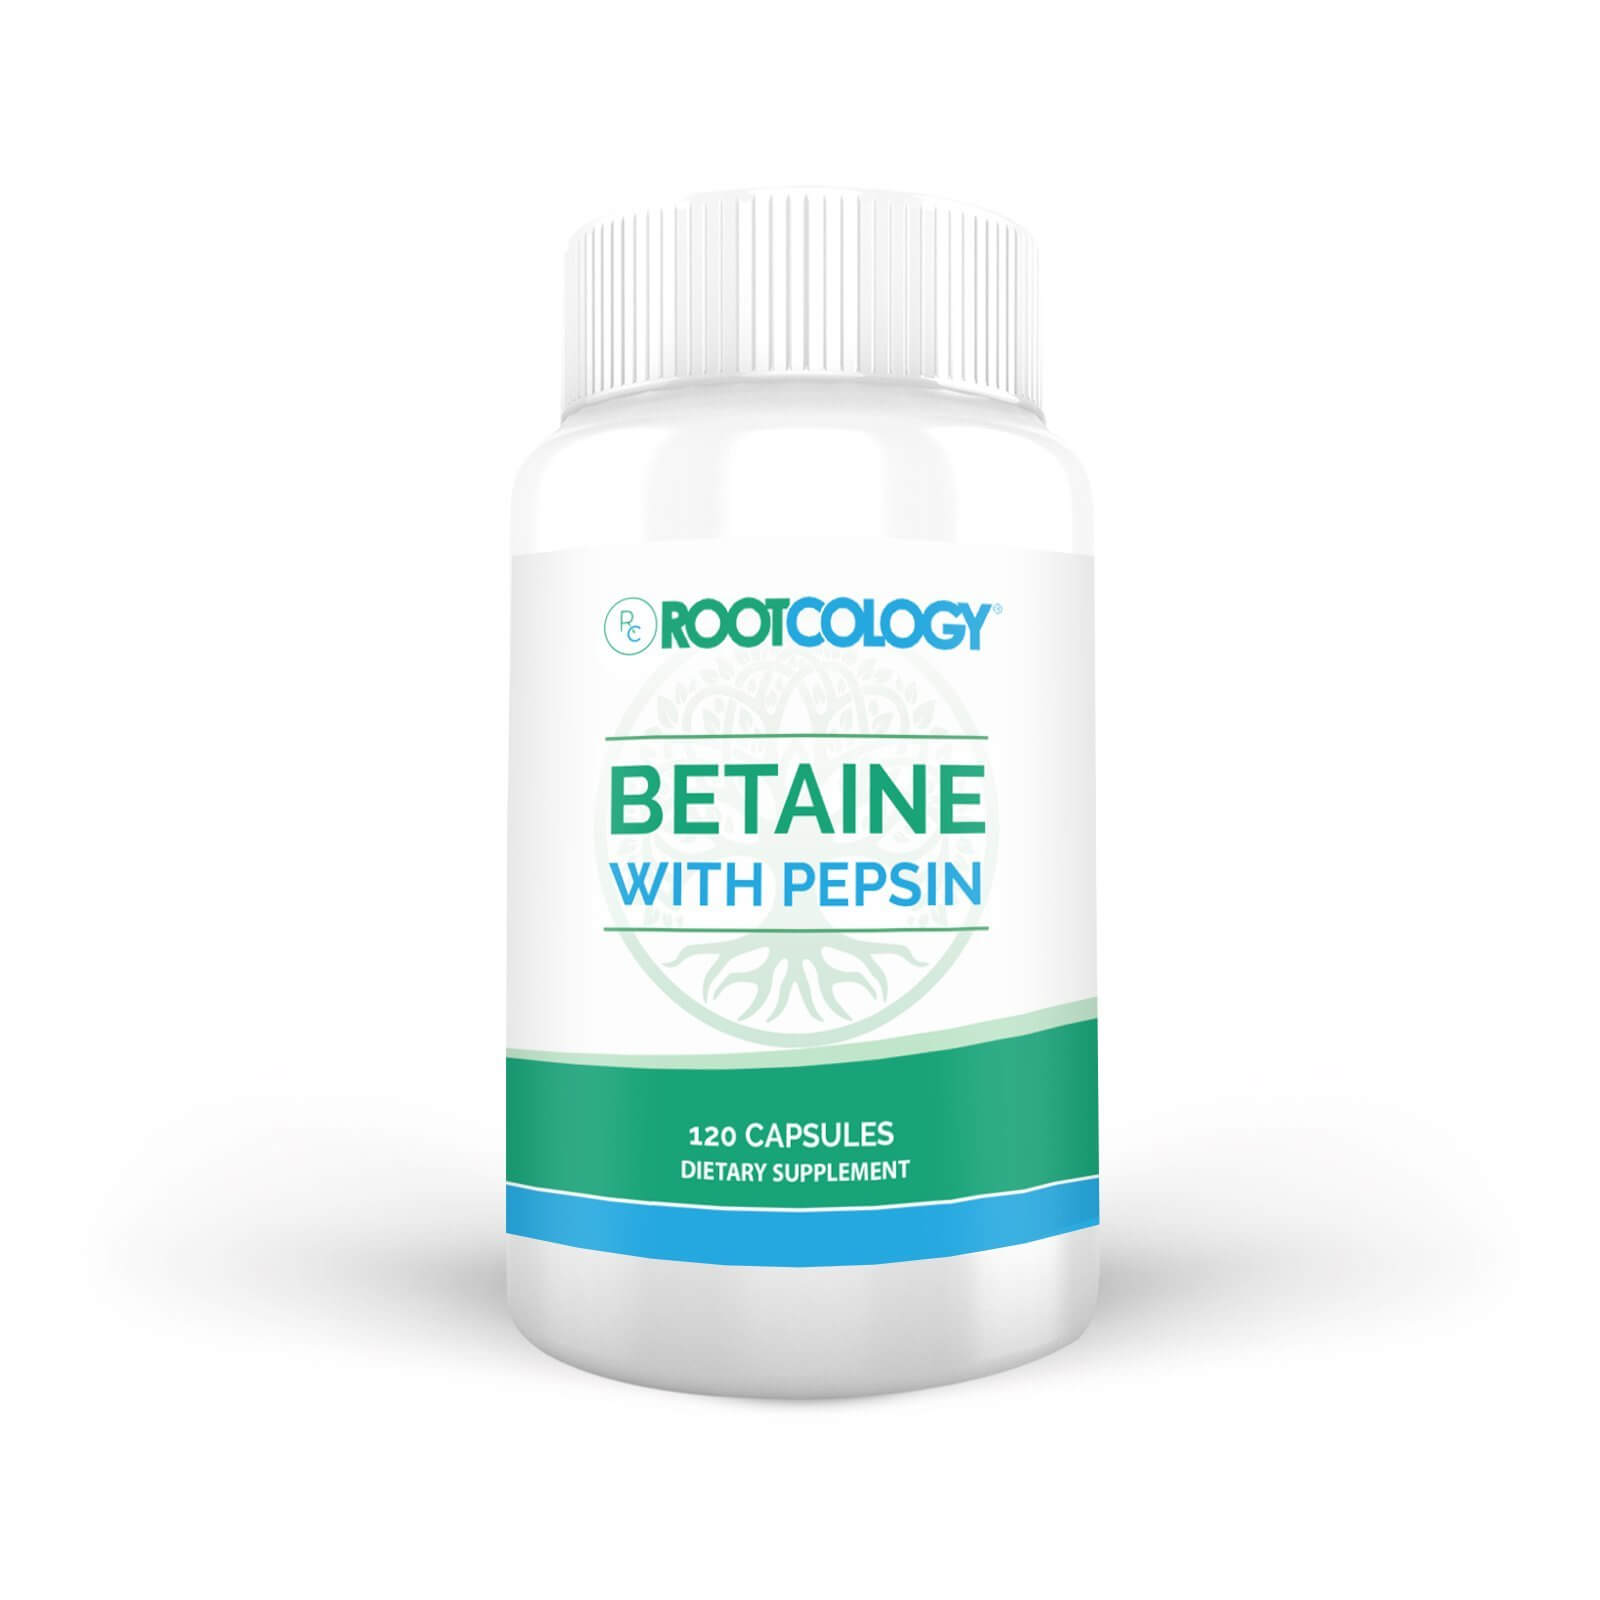 Betaine with Pepsin